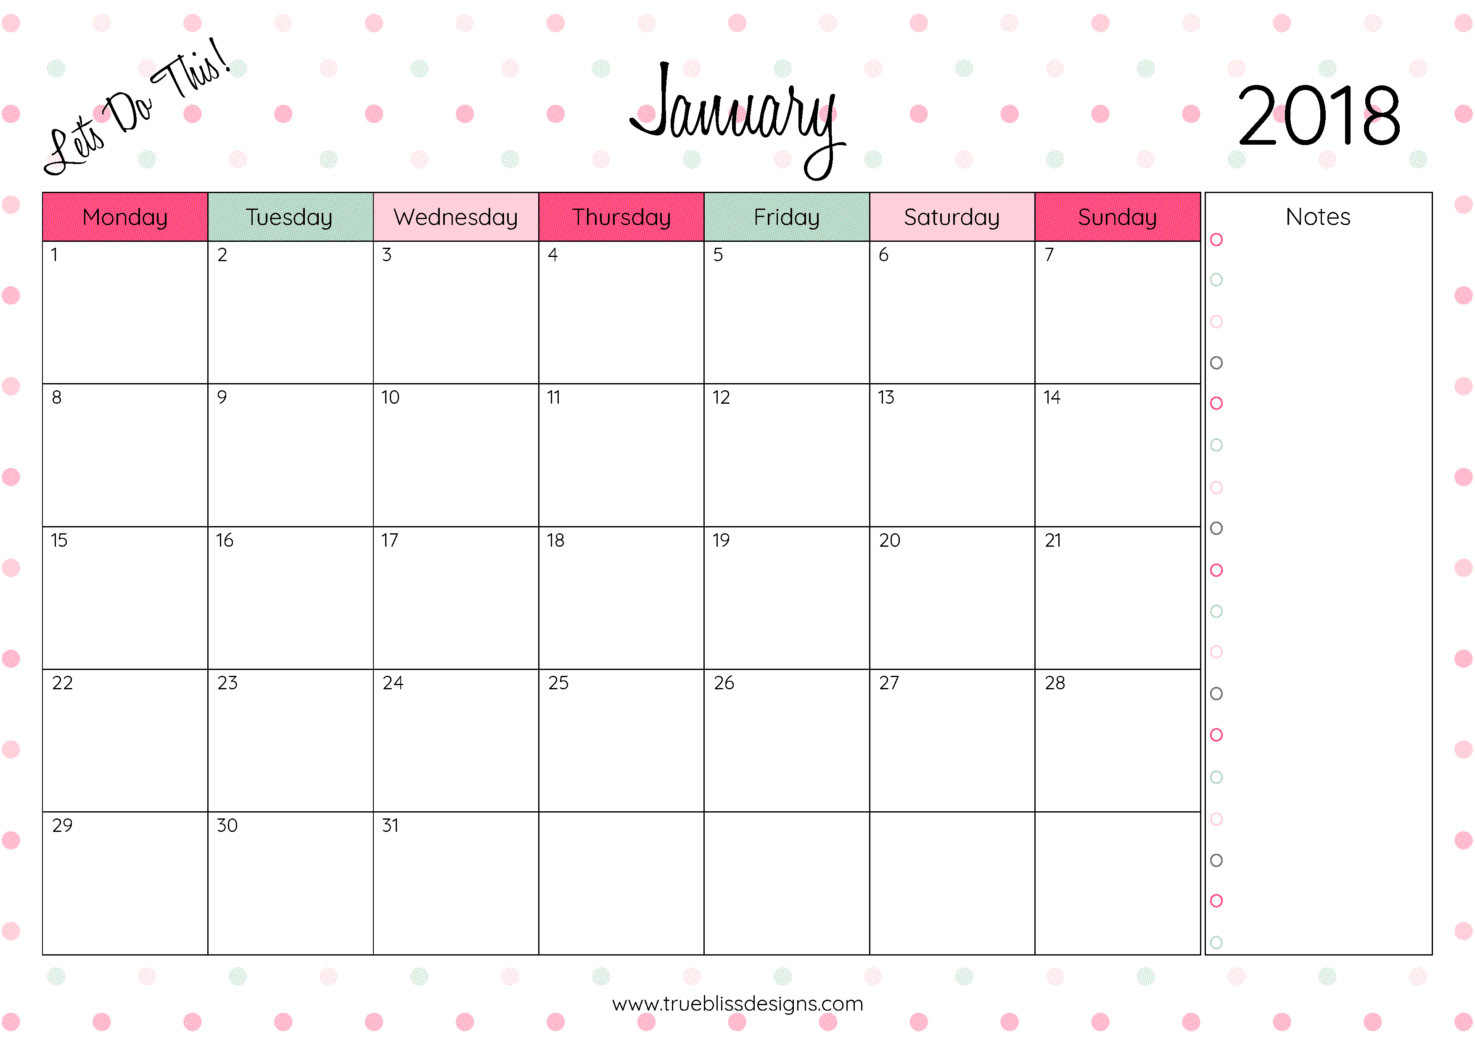 2018 monthly printable calendar lets do this true bliss designs